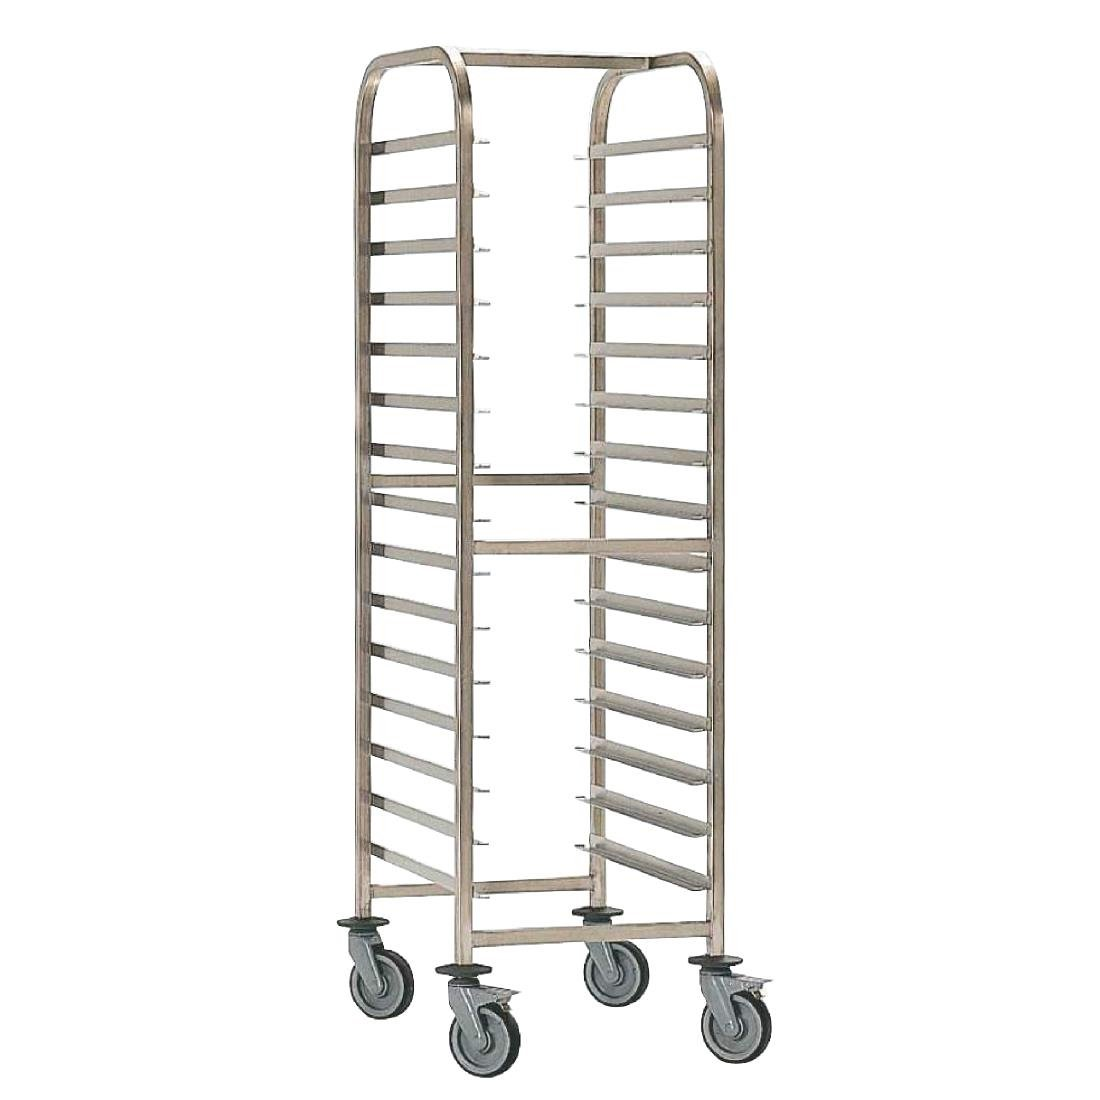 Image of EAIS Stainless Steel Trolley 15 Shelves